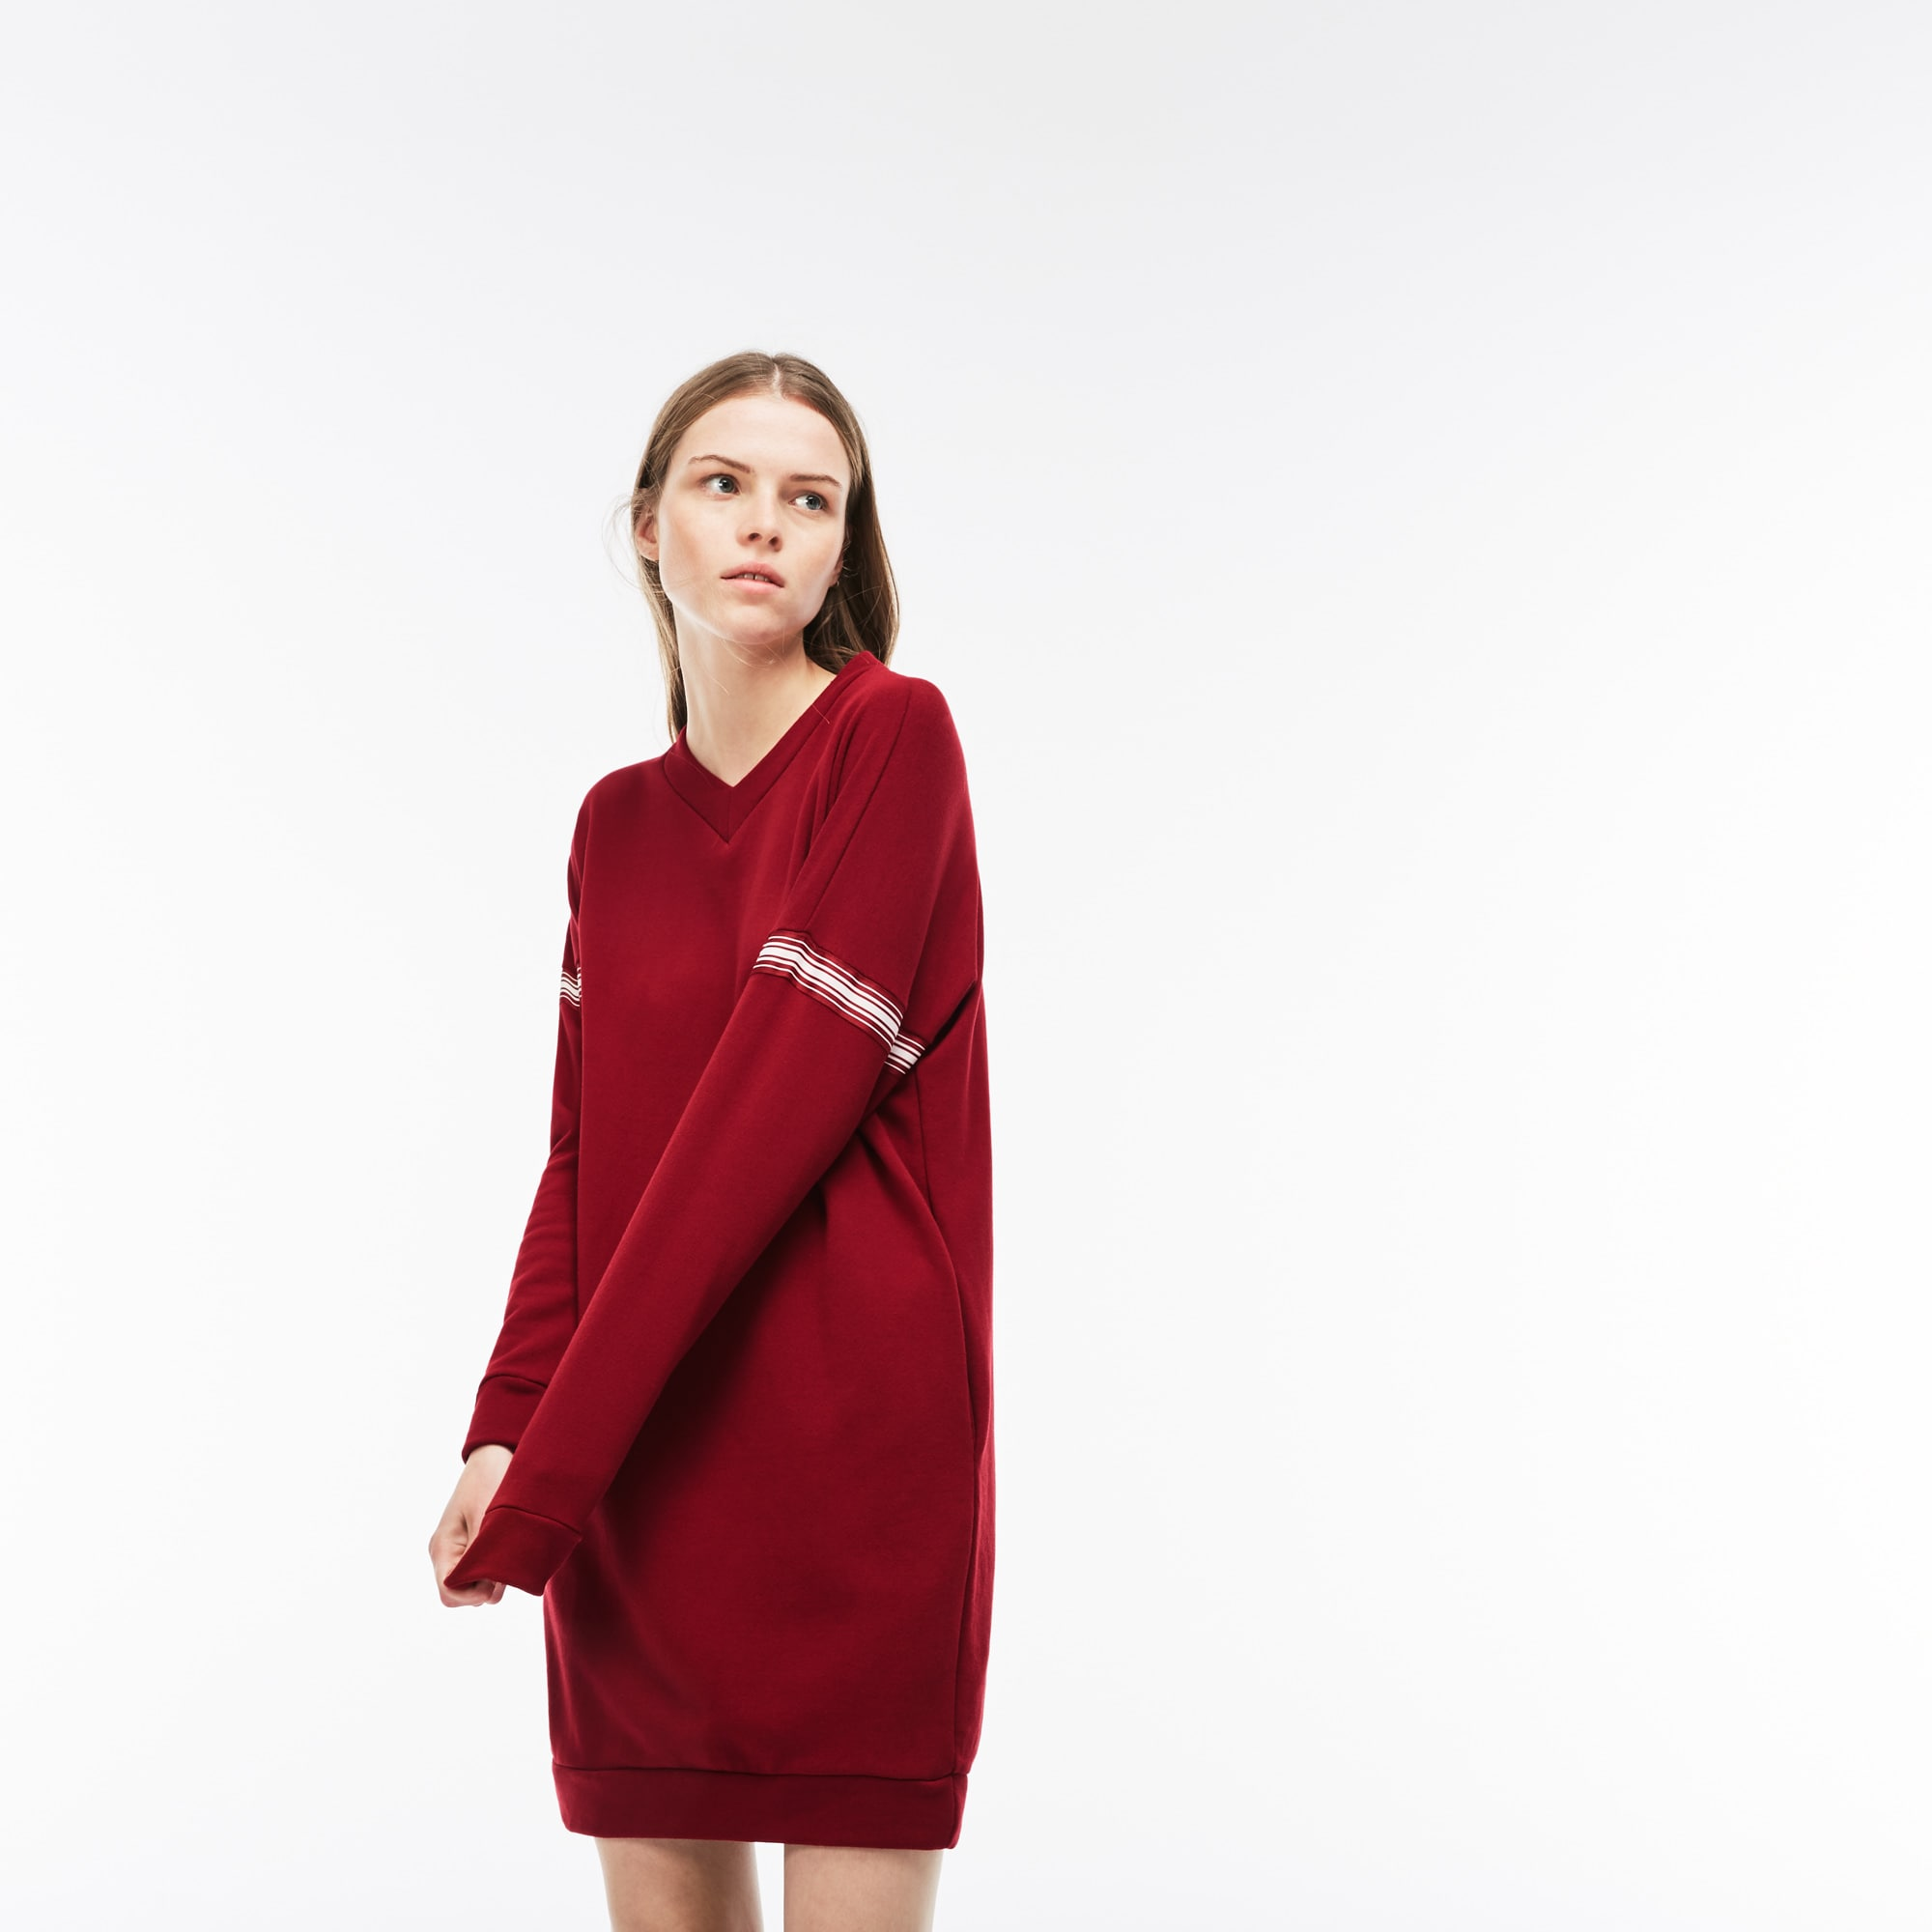 Women's Contrast Bands Crepe Fleece Sweatshirt Dress